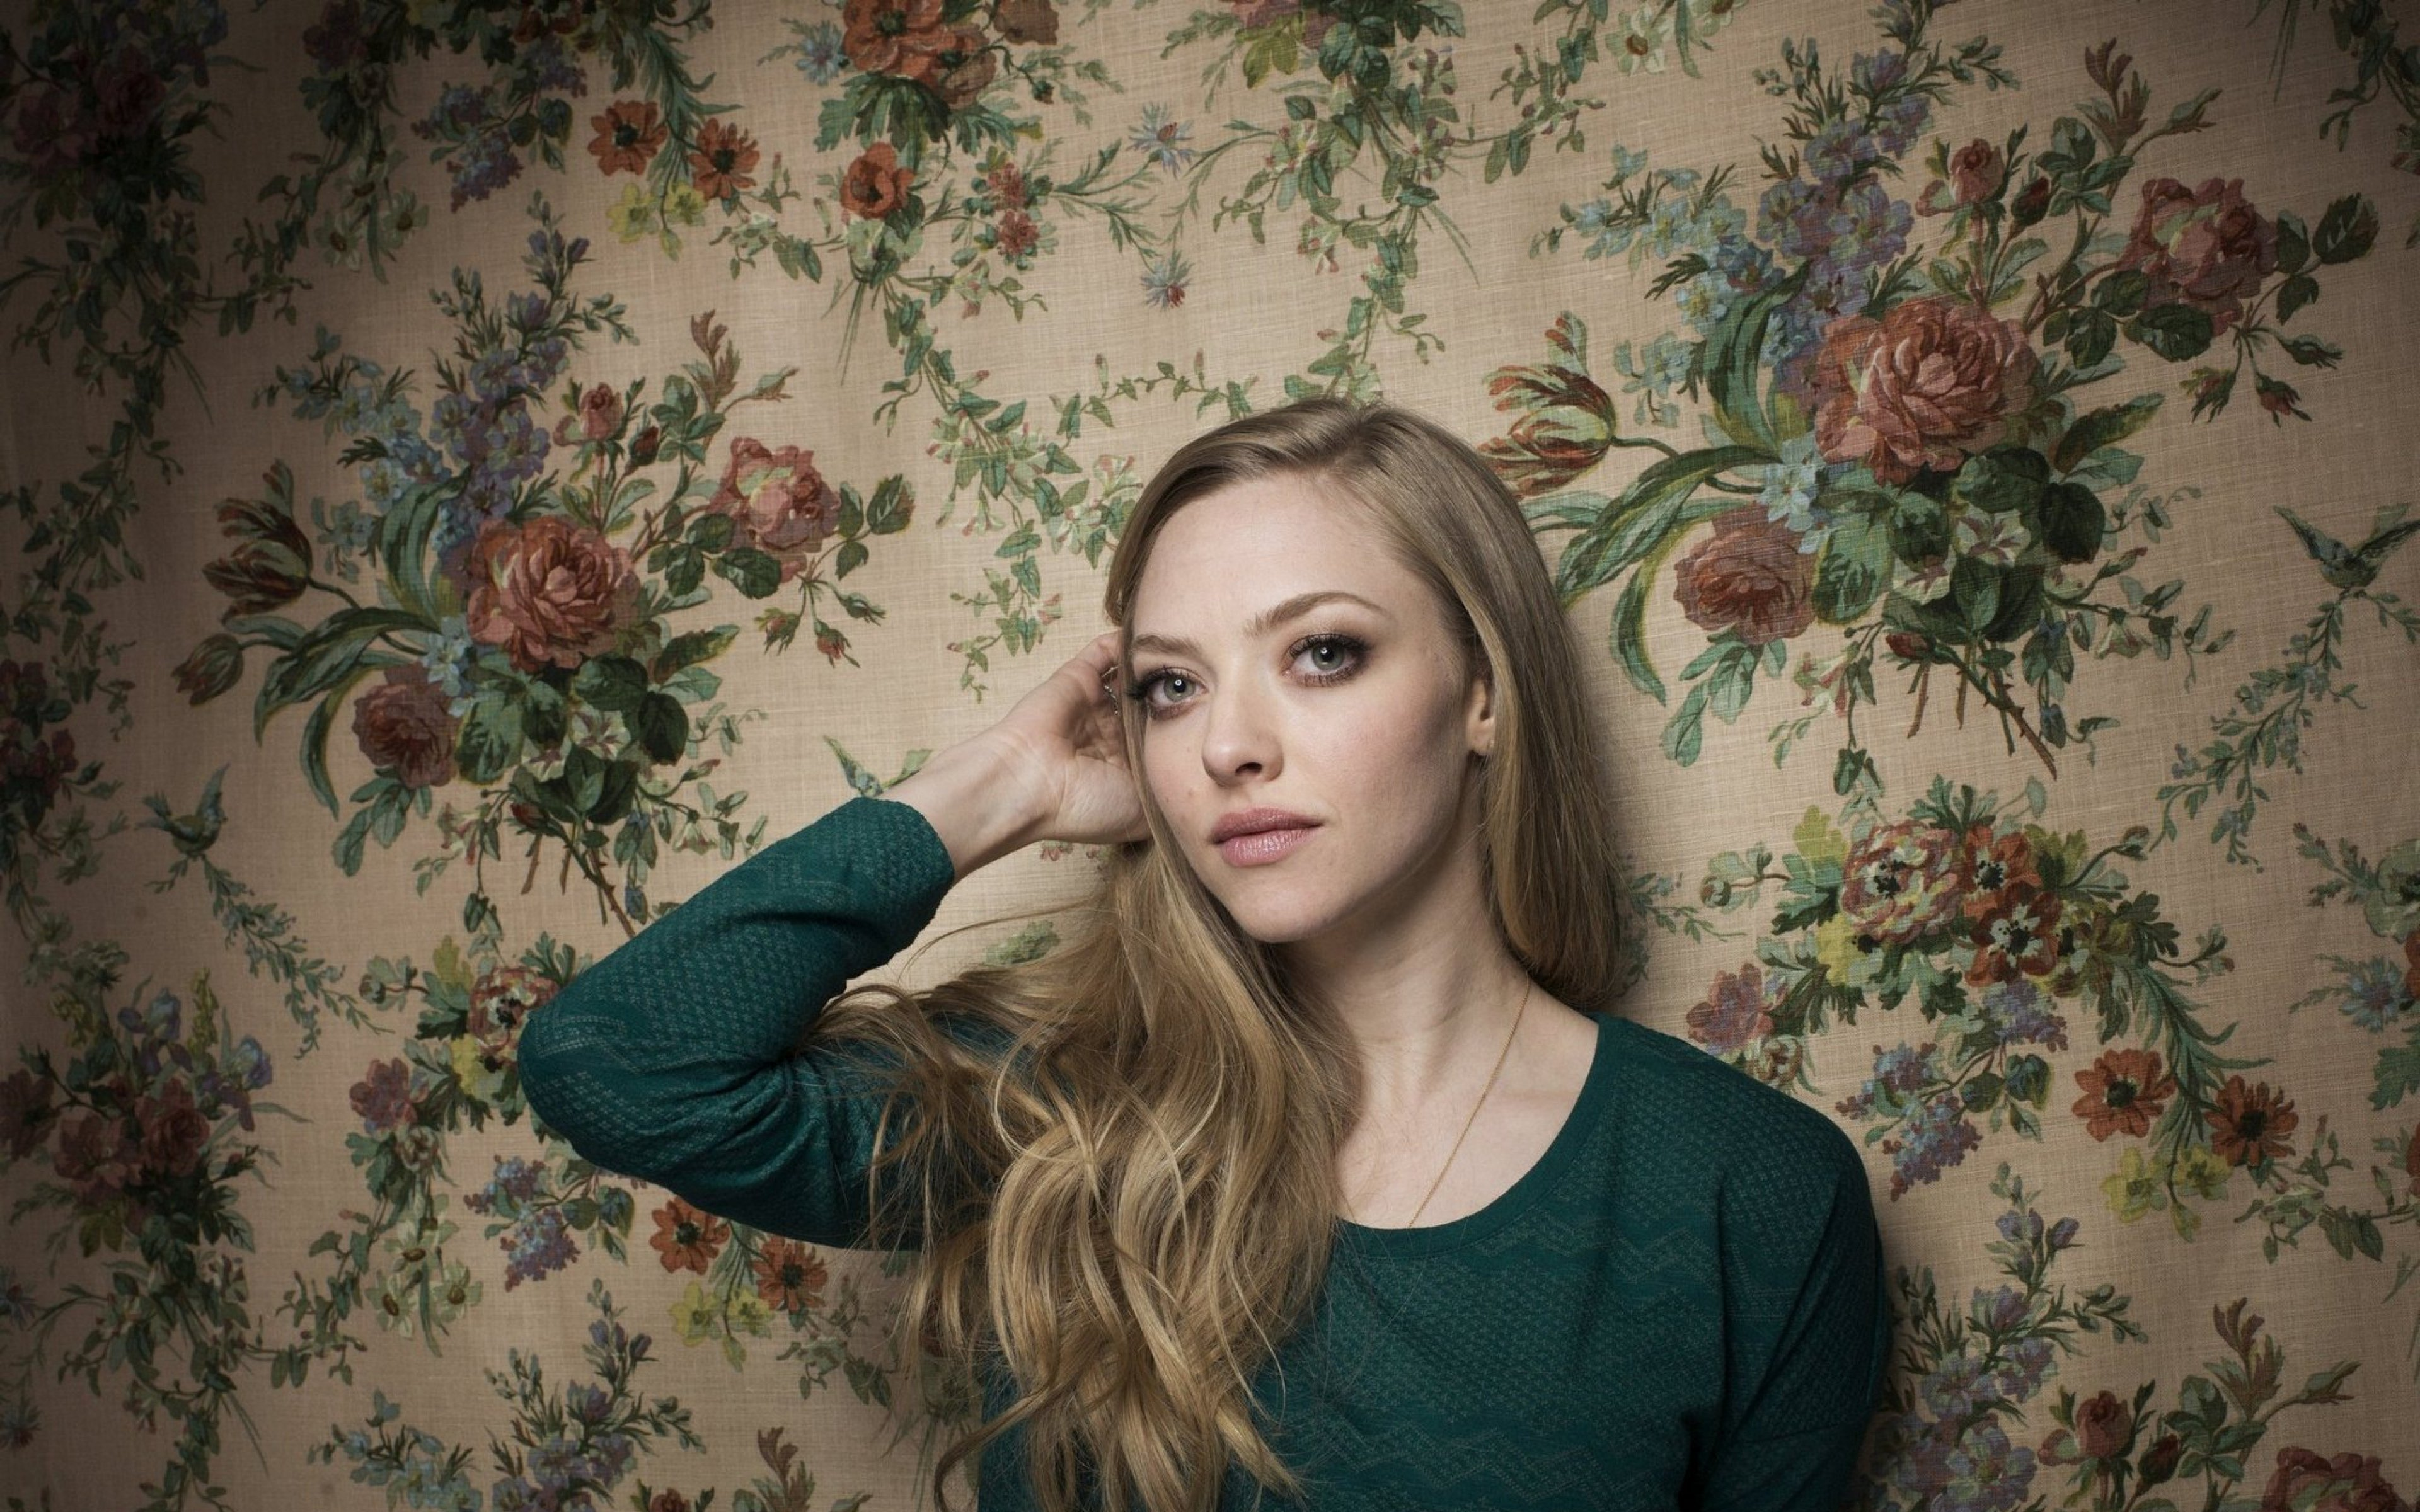 amanda_seyfried_actress_celebrity_blonde_102317_3840x2400